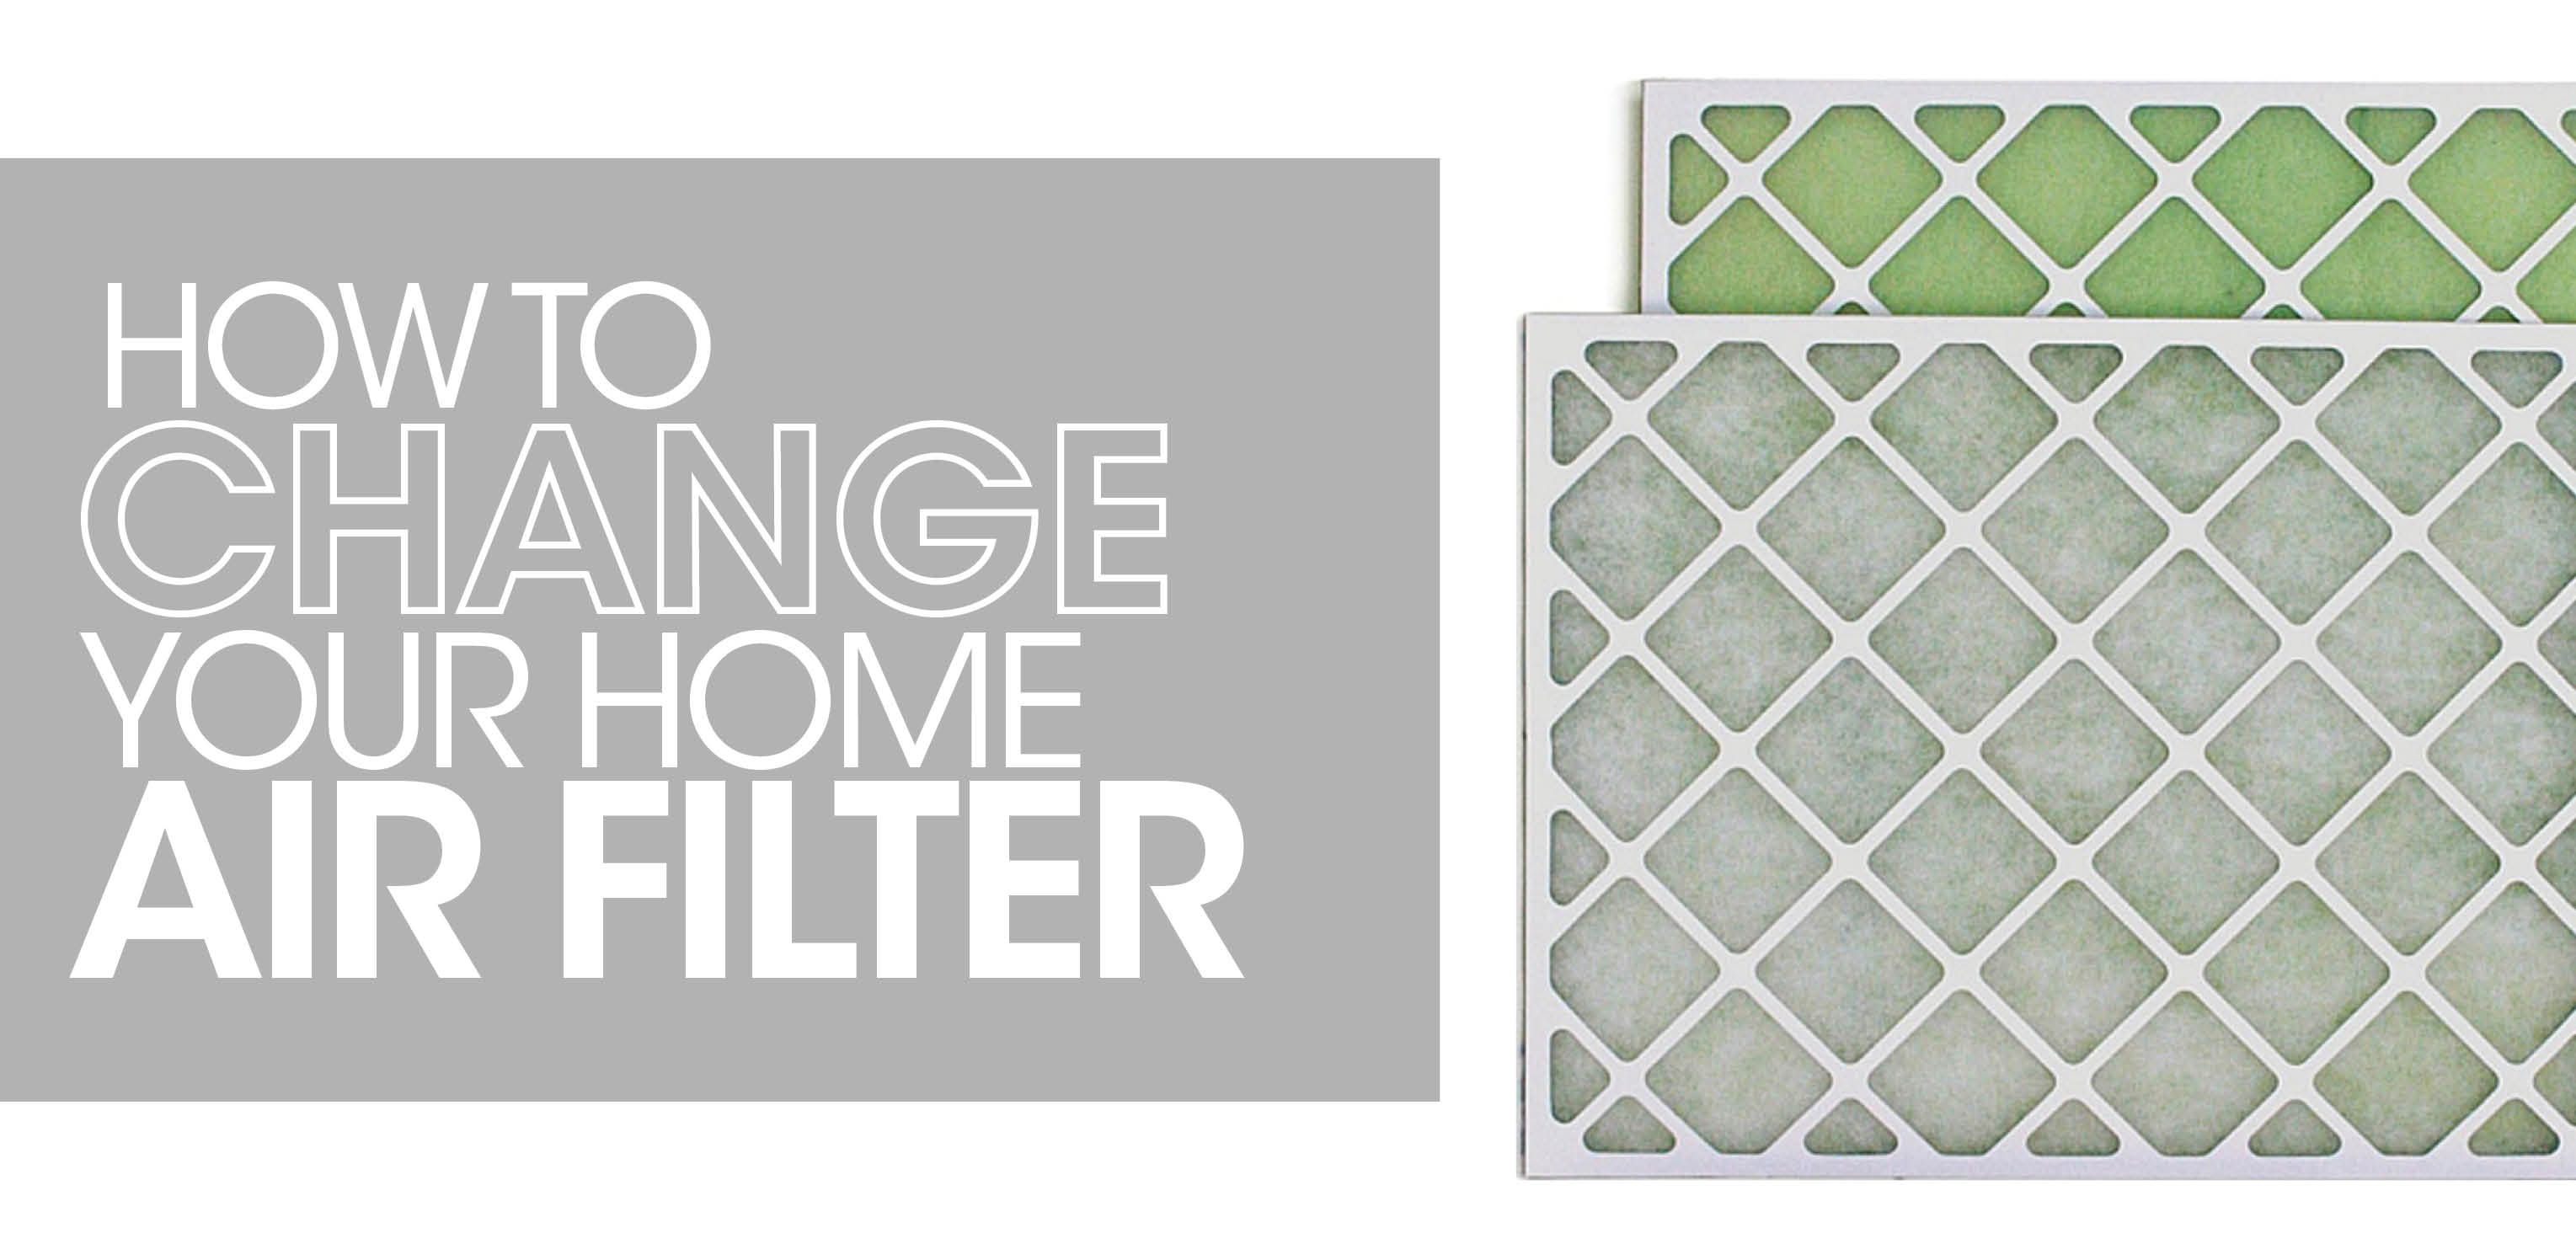 How to Change Your Home Air Filter Filters